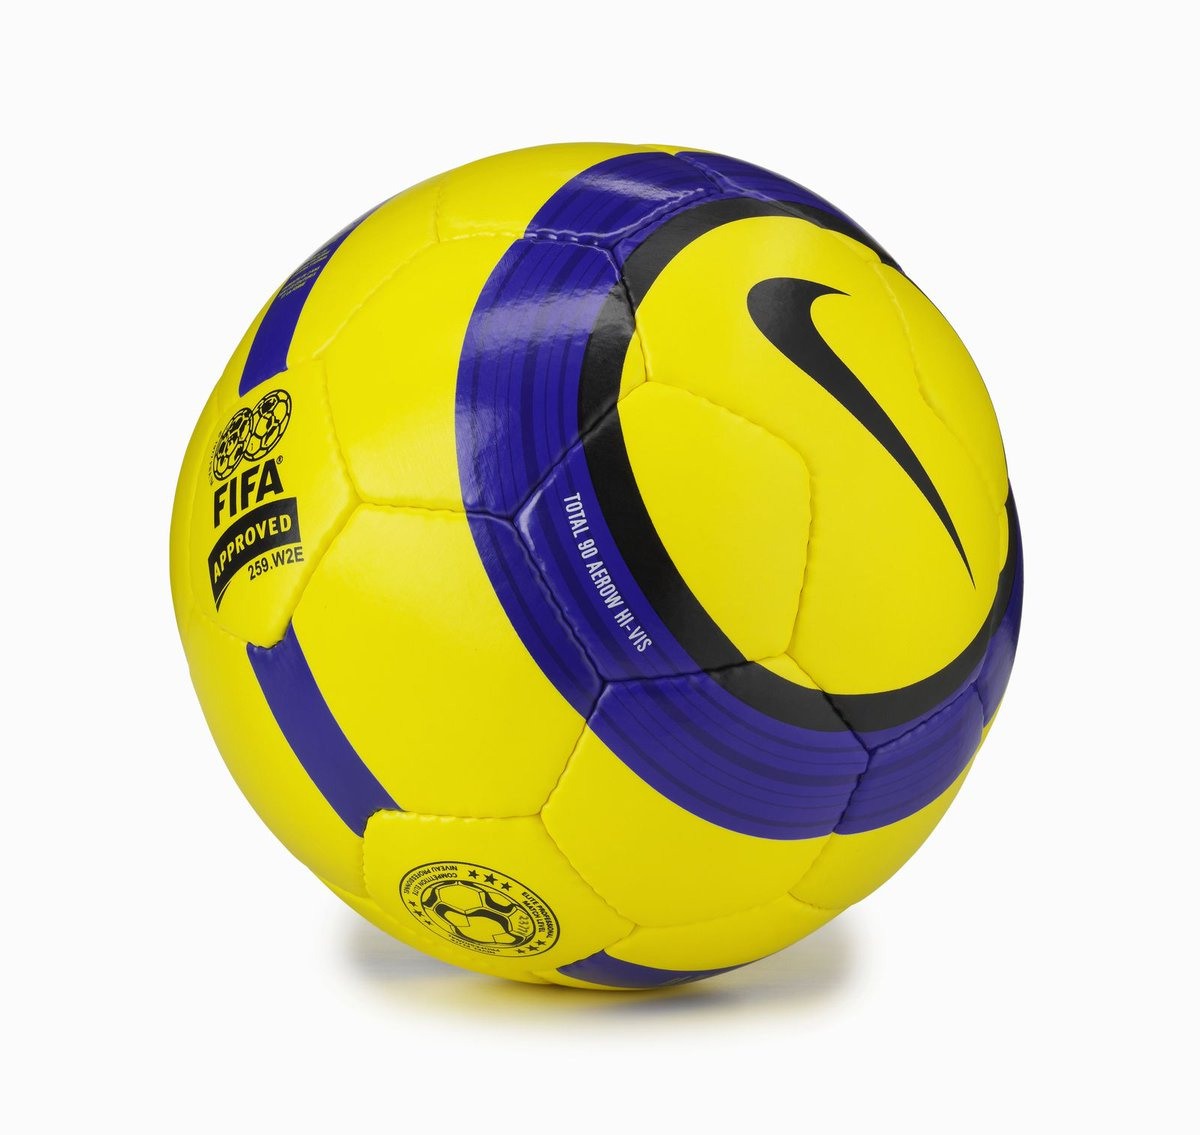 Coral On Twitter The Hi Vis Nike Ordem 4 Winter Ball Will Make Its PL Debut This Weekend Nothing Ever Beat Bad Boy Though